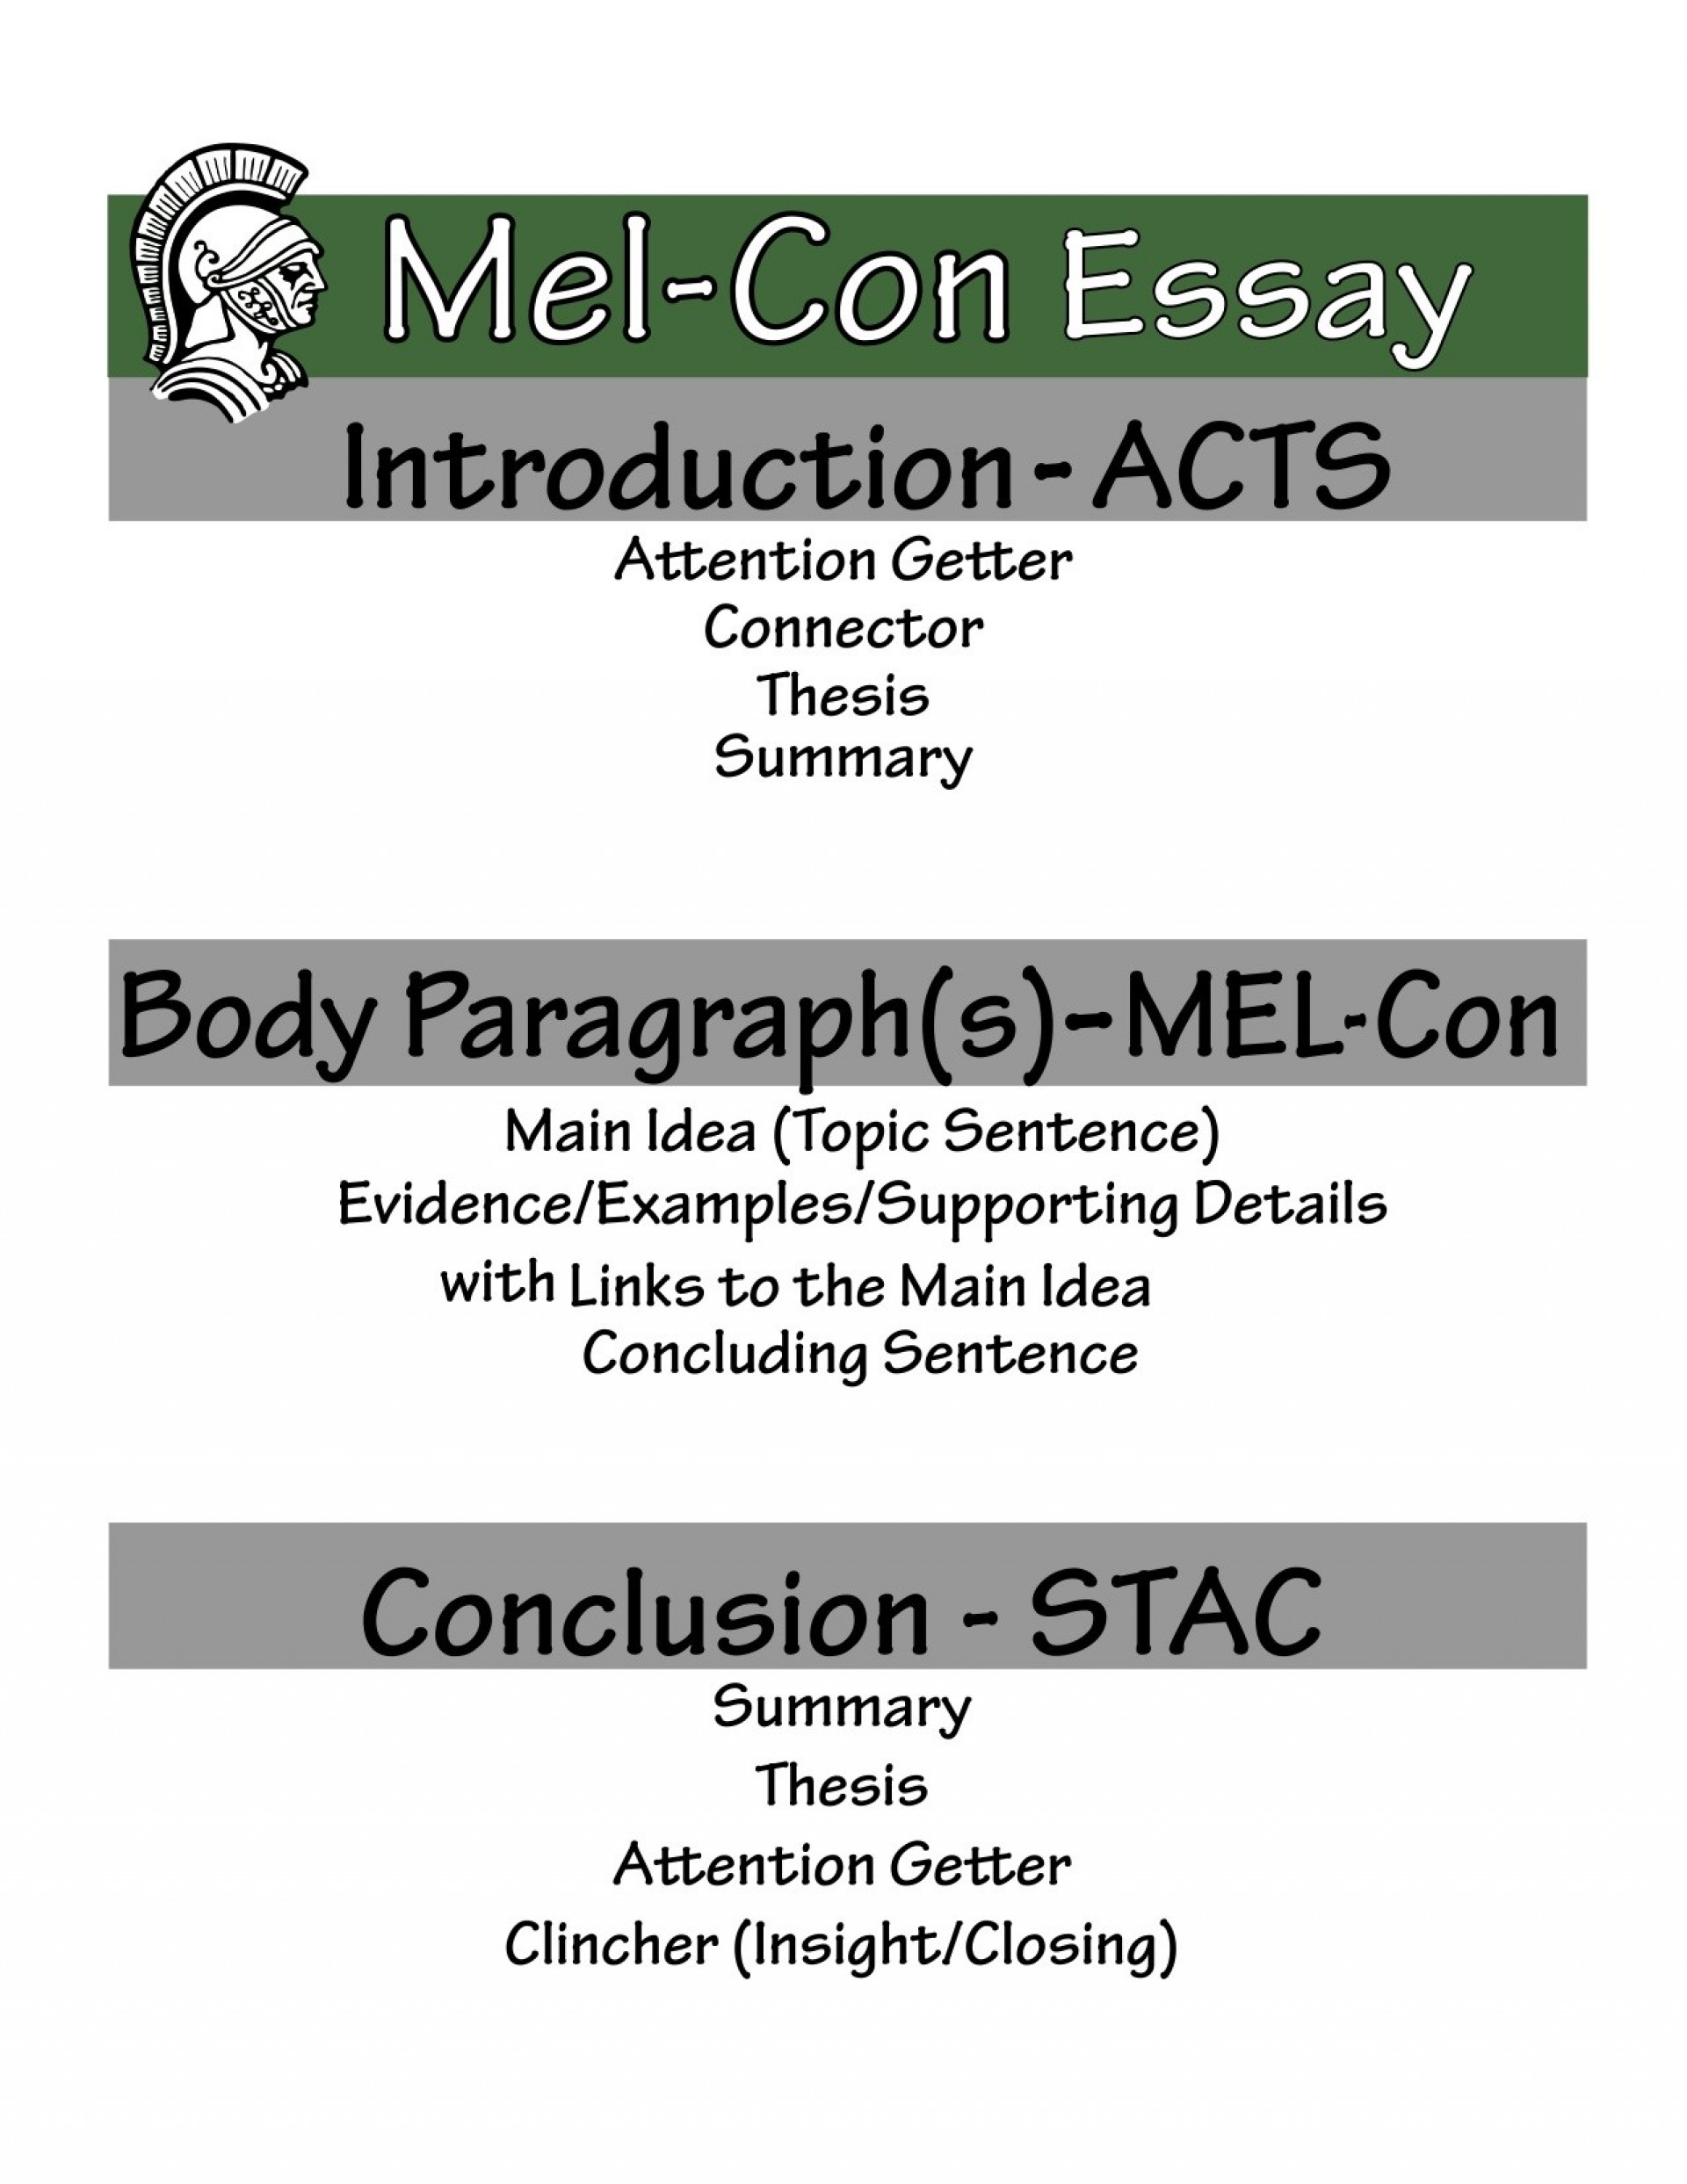 023 Mel Conessay85x11 Transitions In Essays Essay Outstanding To Use College Writing Ppt Smooth 1920